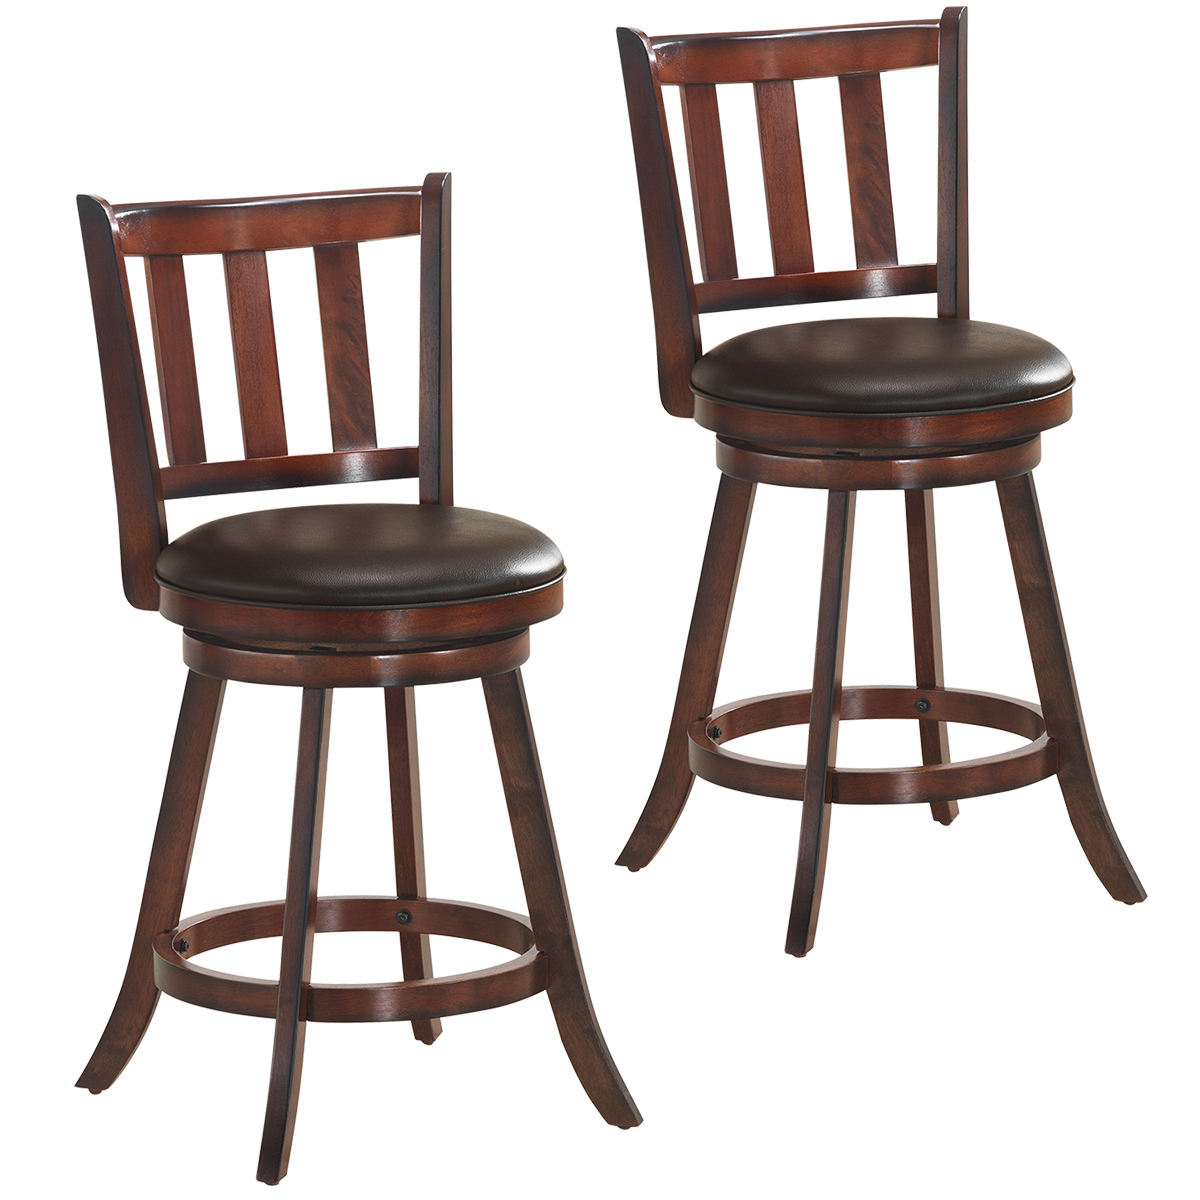 Costway Set Of 2 25'' Swivel Bar Stool Leather Padded Dining Kitchen Pub Bistro Chair